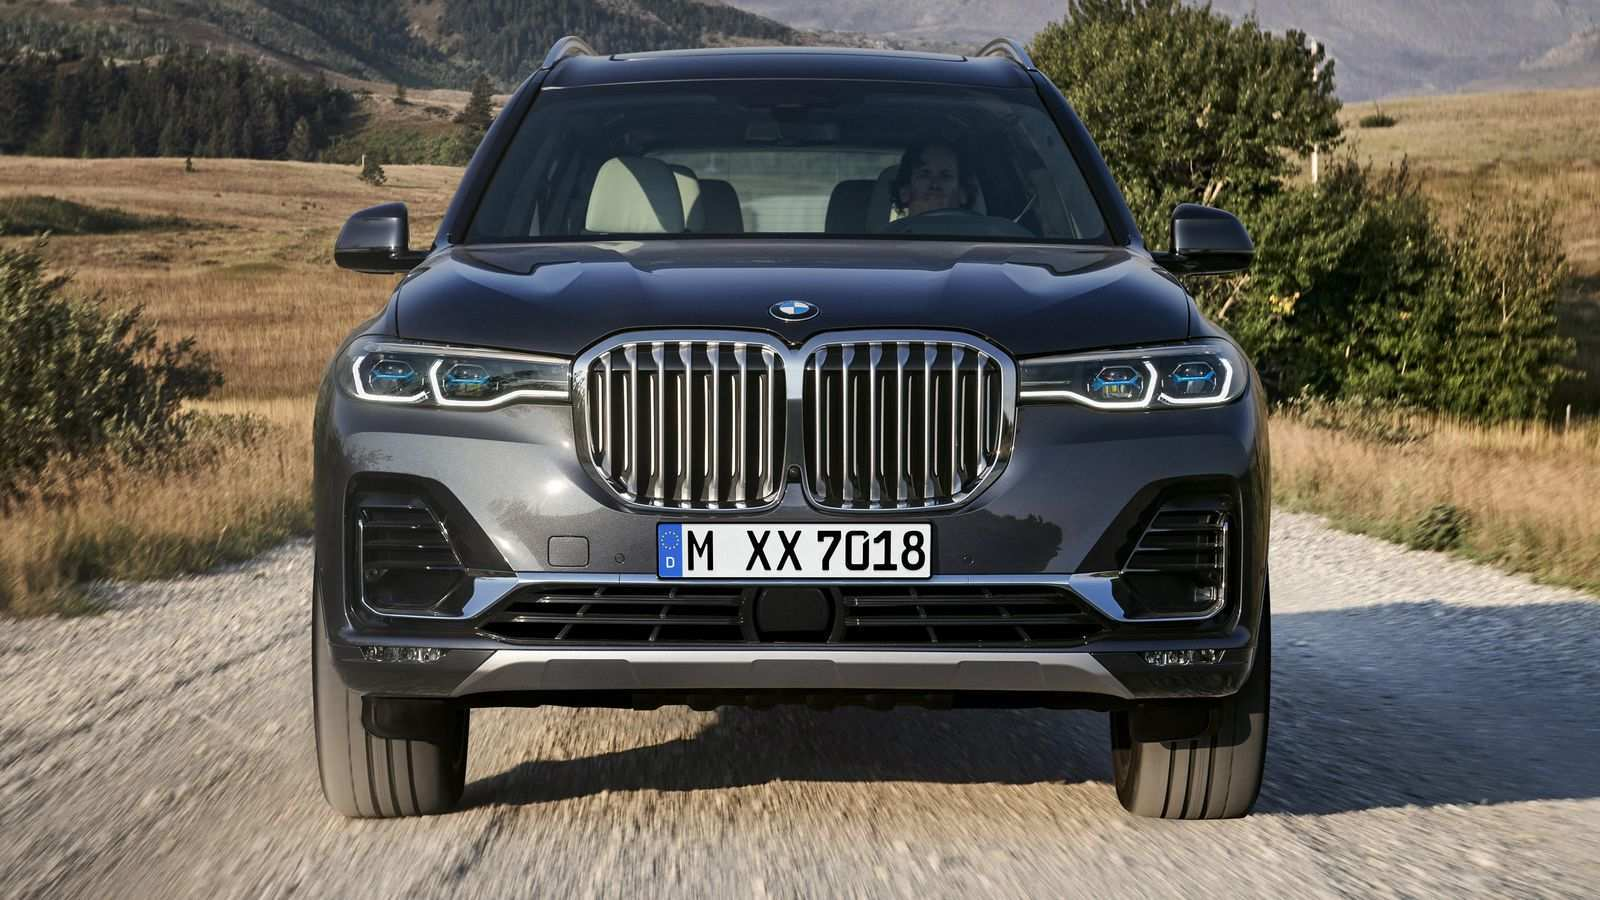 72 All New 2020 BMW X7 Suv Redesign And Review